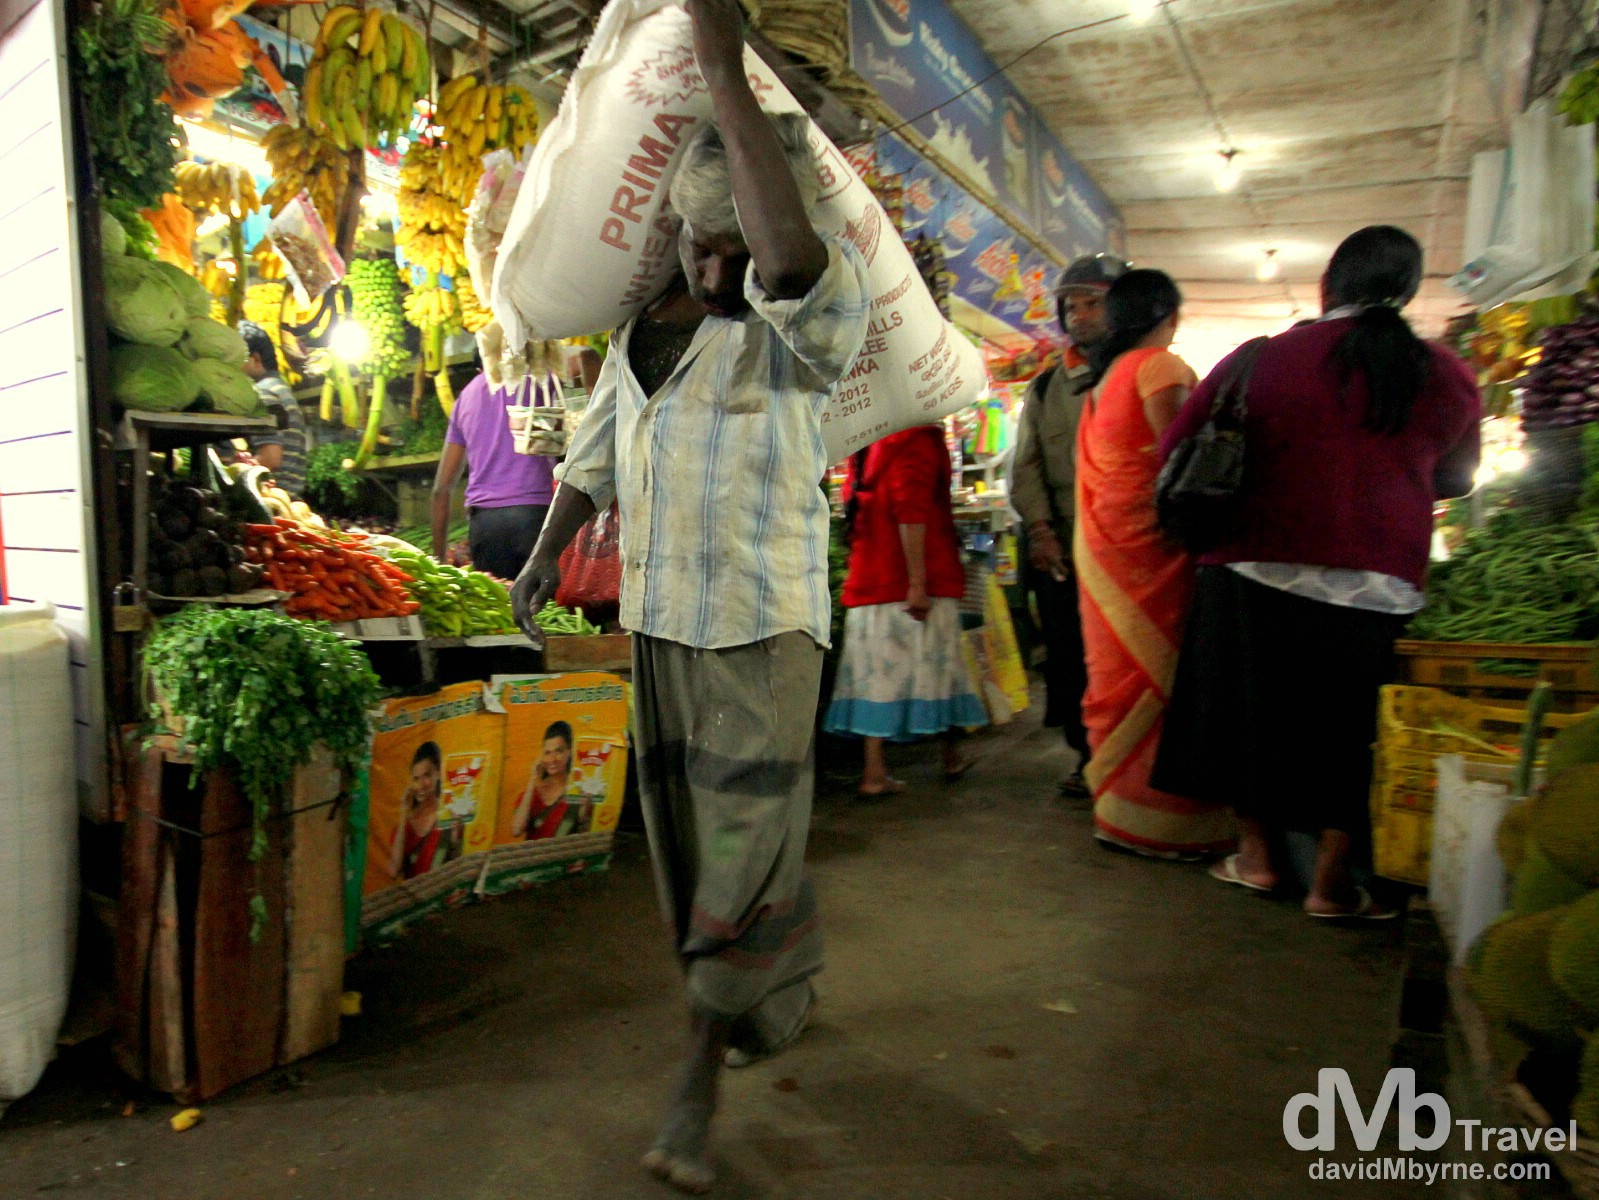 Activity in a produce market in Nuwera Eliya, Sri Lanka. September 6th 2012.